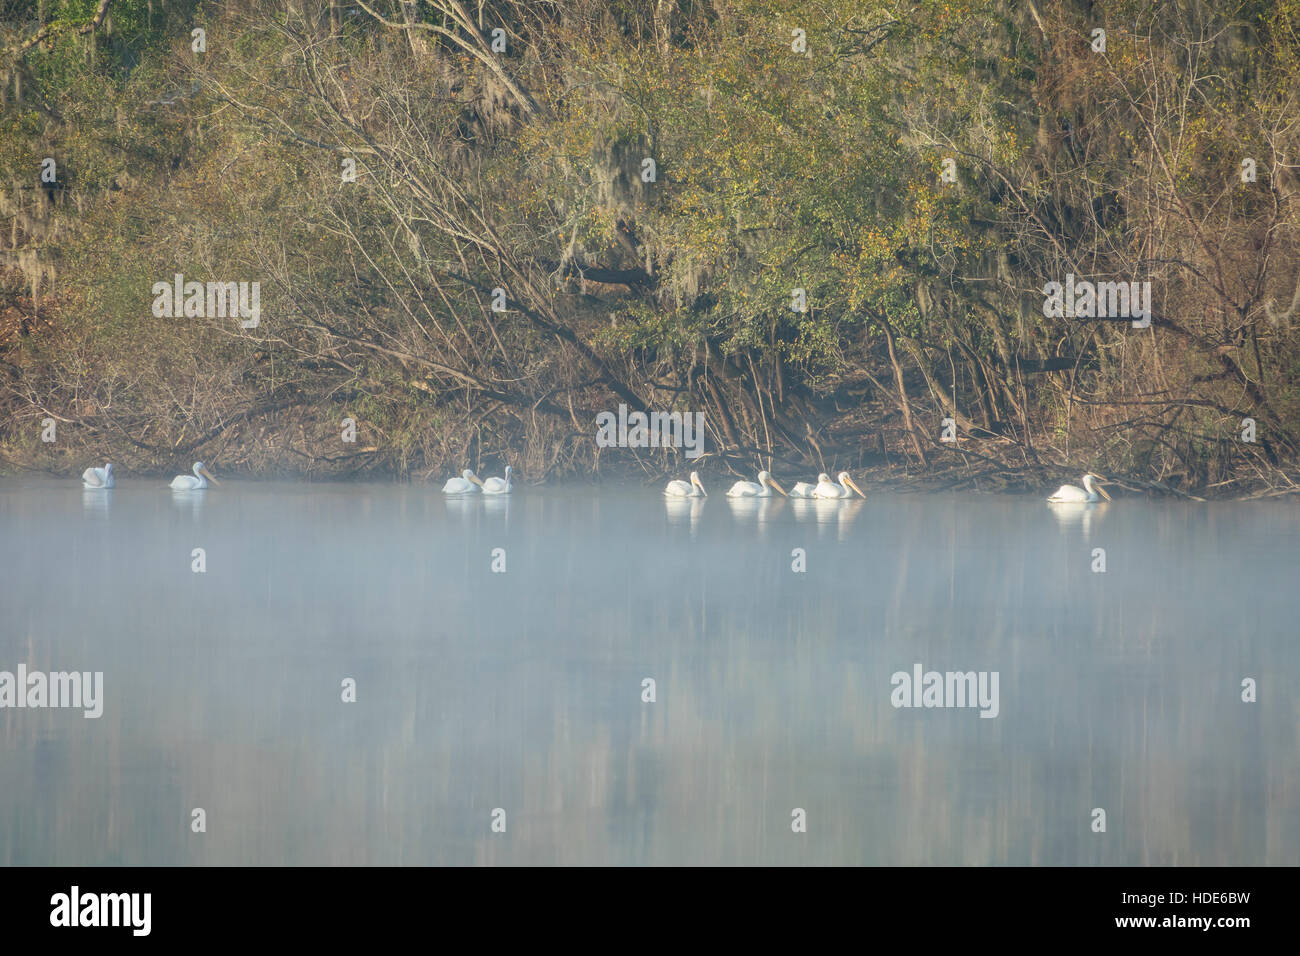 White Pelican birds swimming up the Suwanee River in early morning fog. - Stock Image